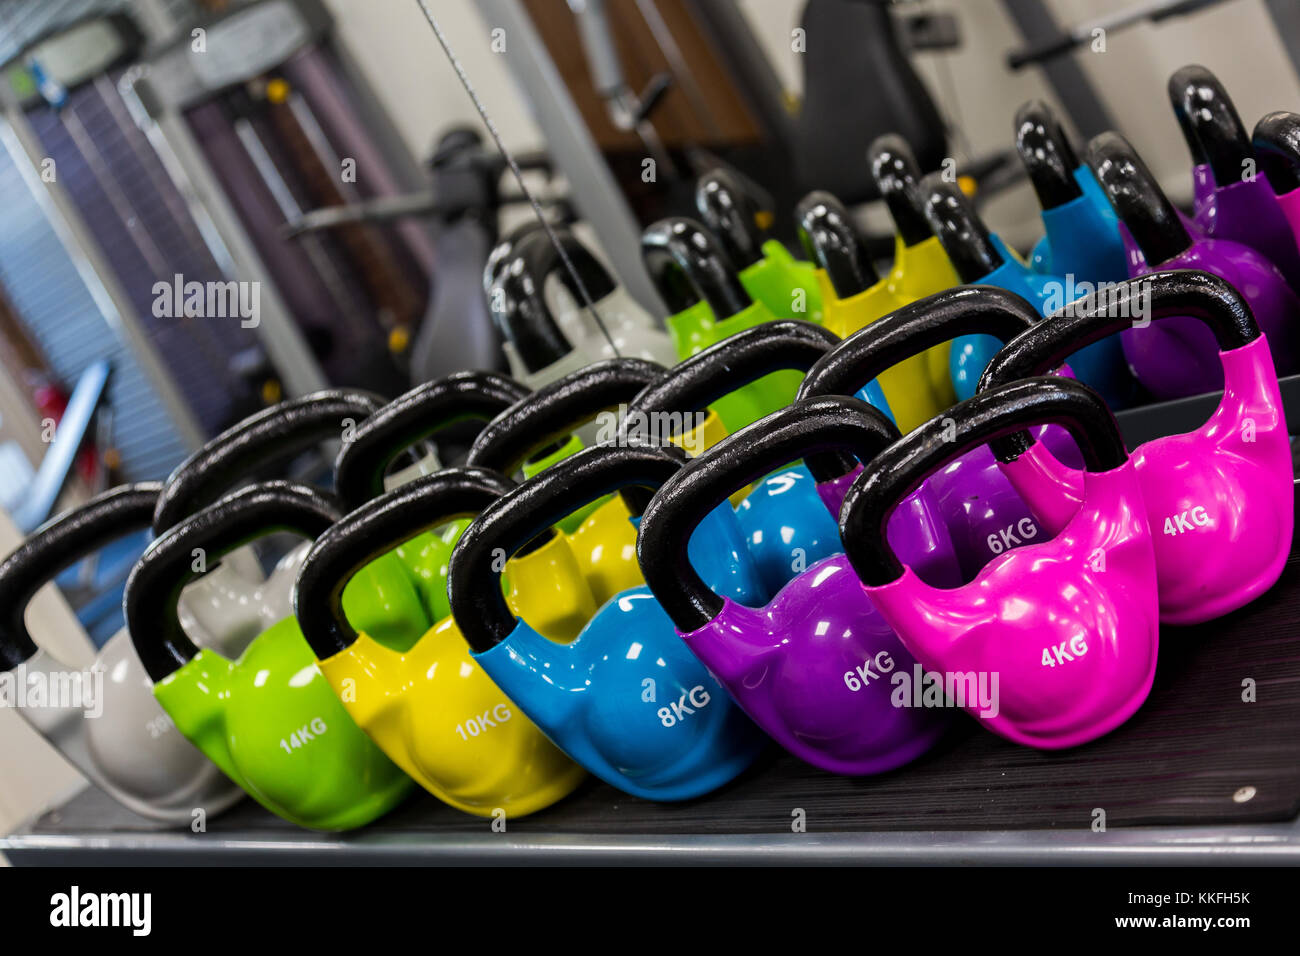 A bright and vibrant set of kettlebells in a gym. - Stock Image